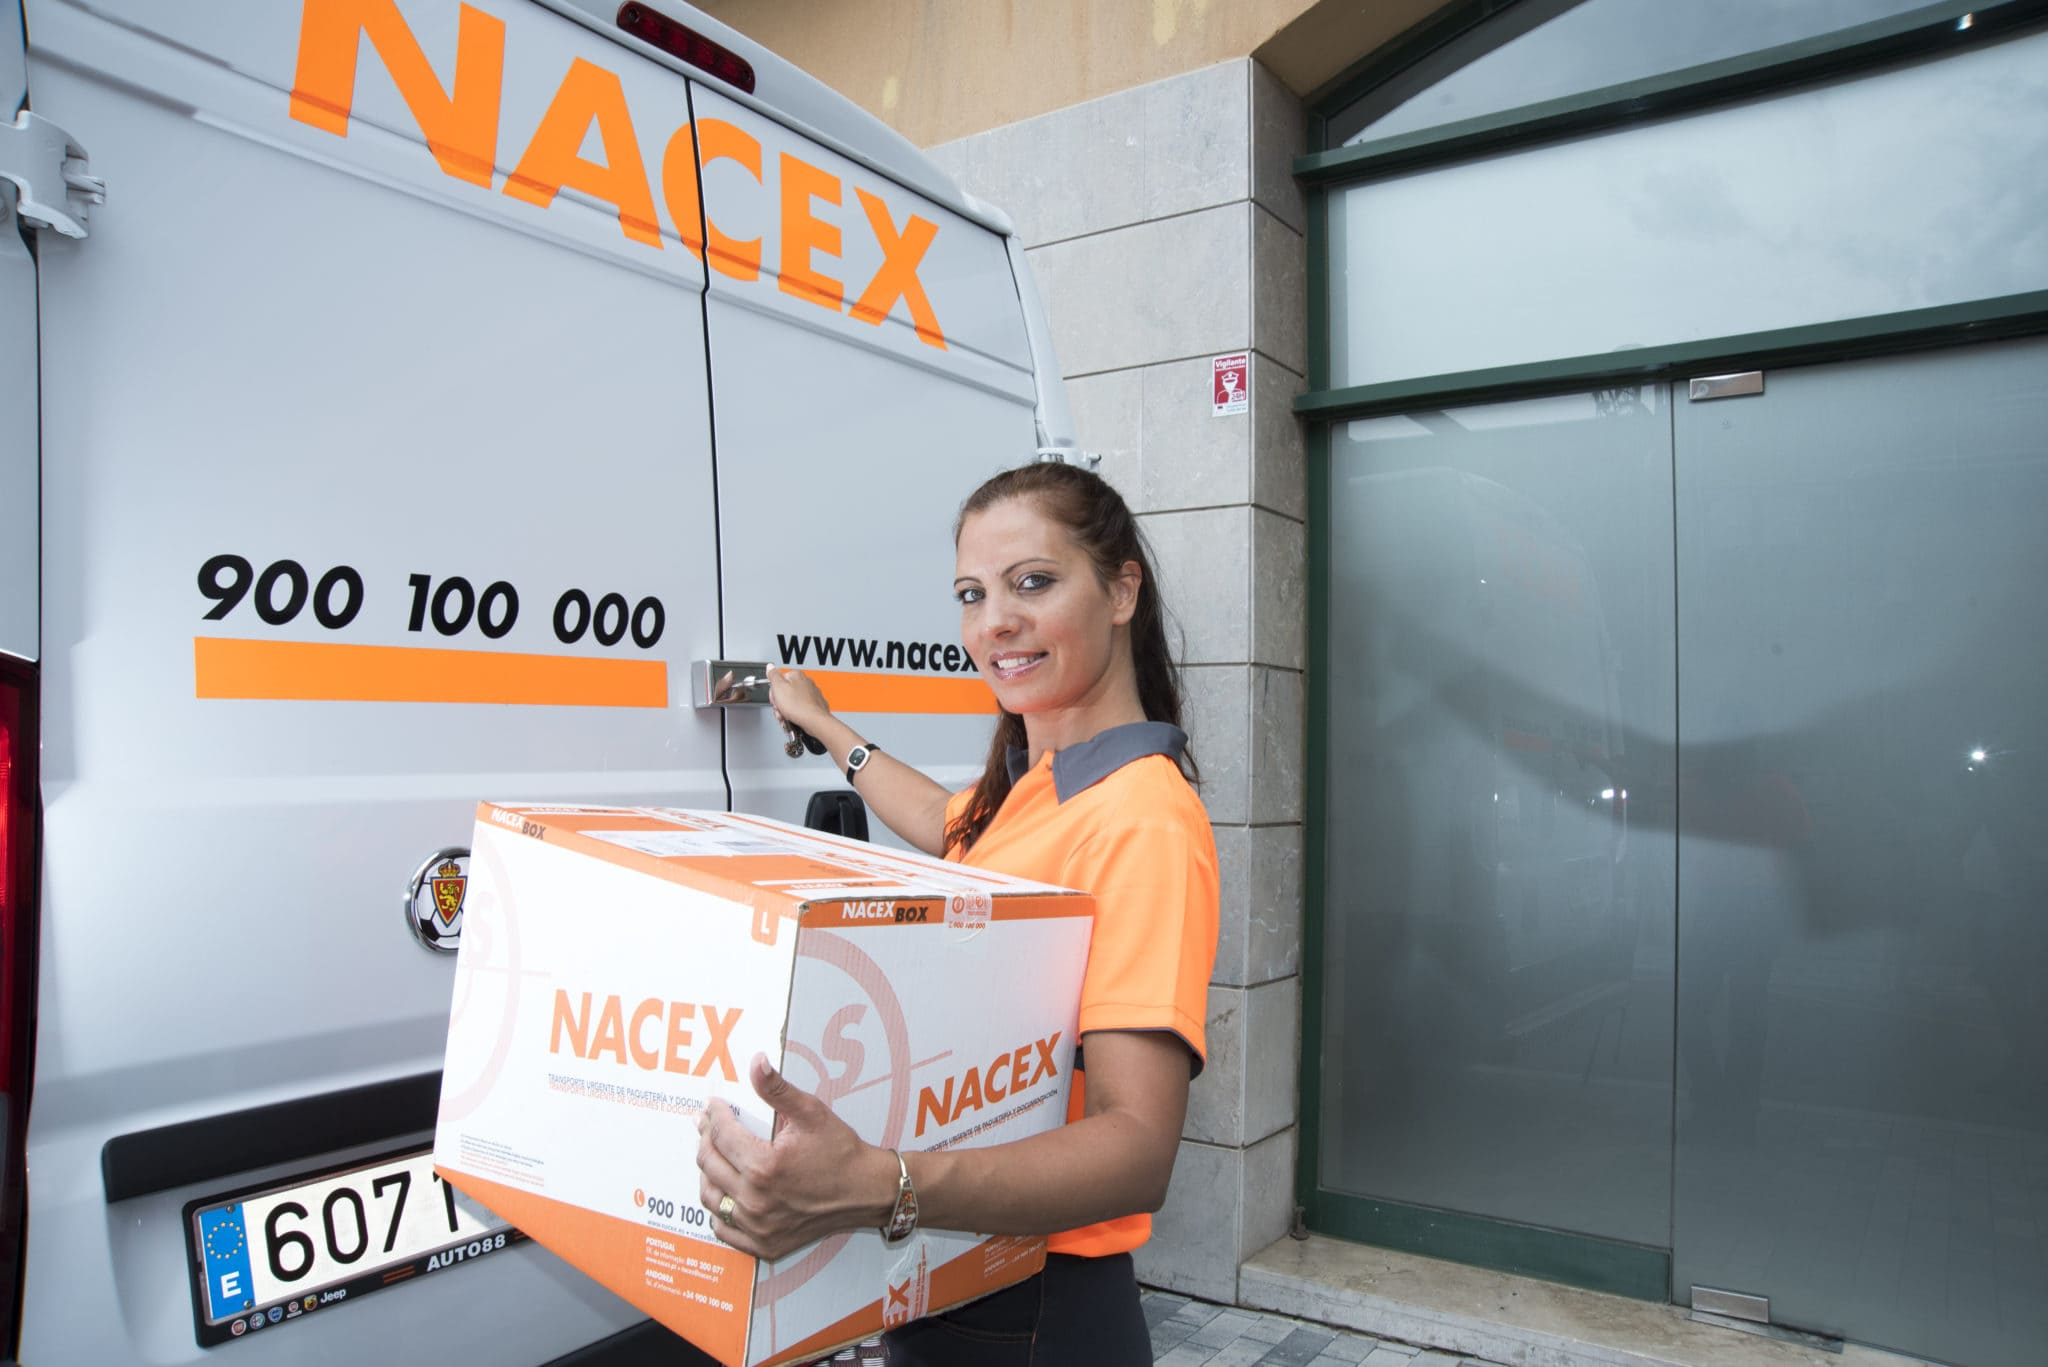 nacex employee delivering packages